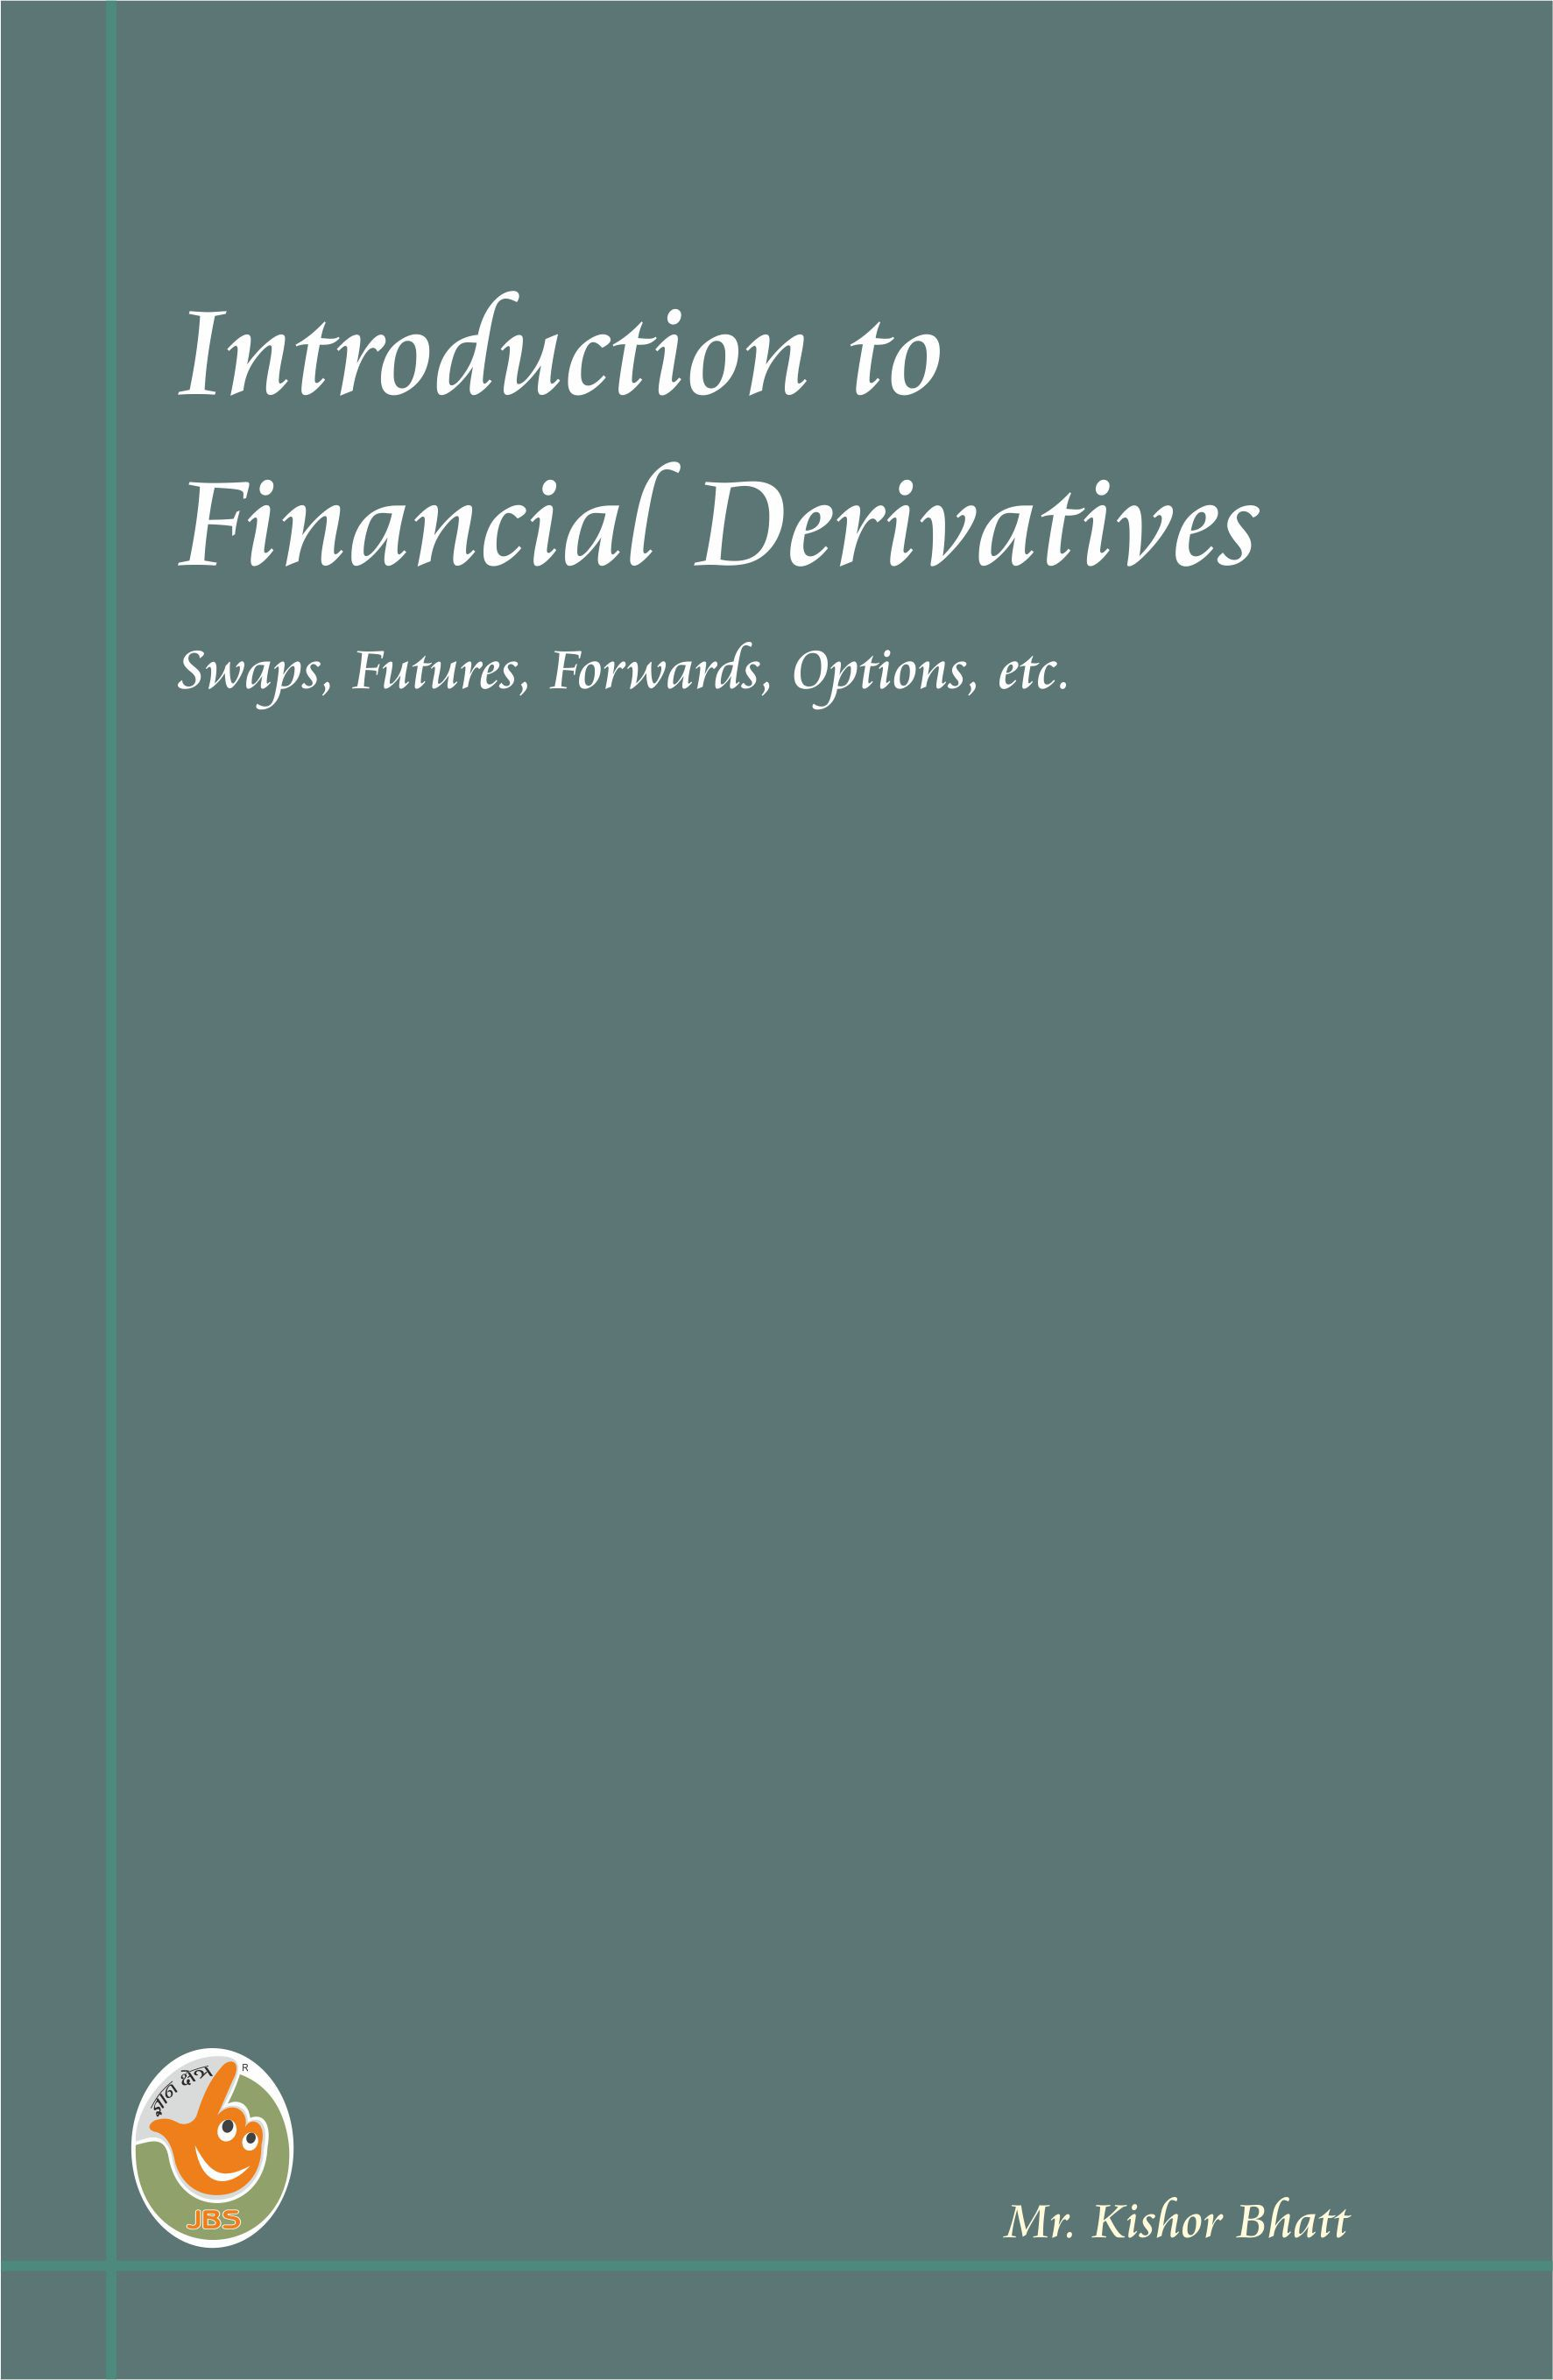 Introduction to Financial Derivatives